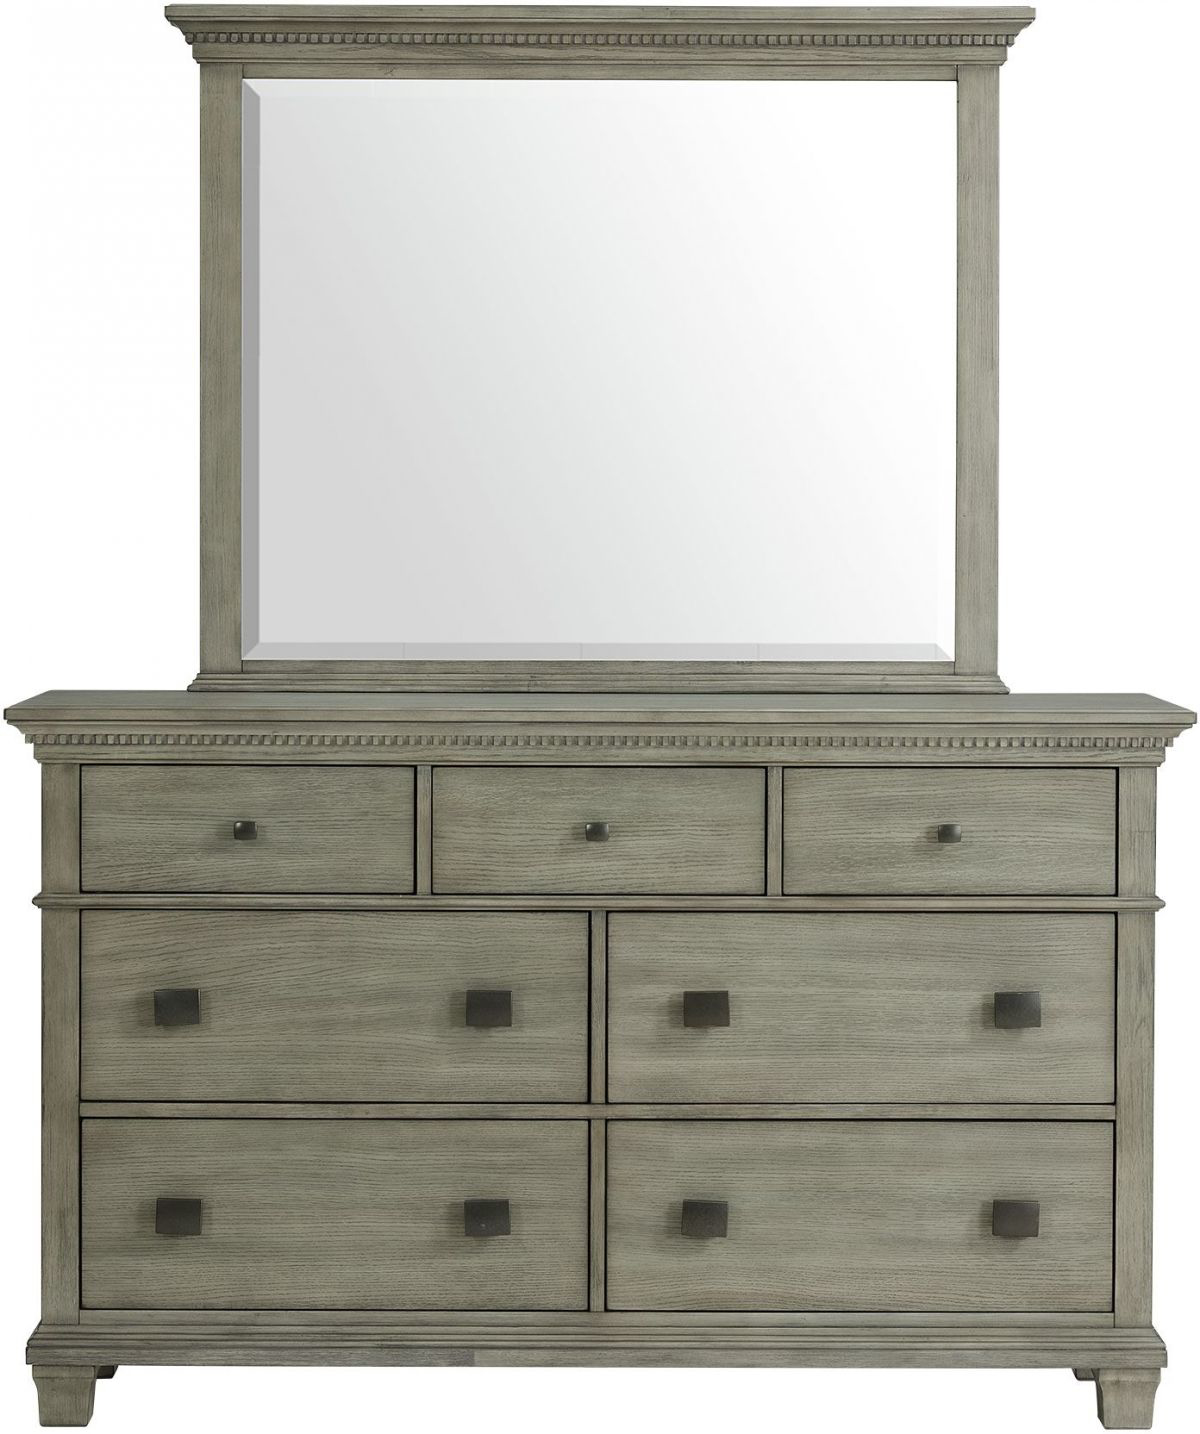 Picture of Crawford Dresser & Mirror